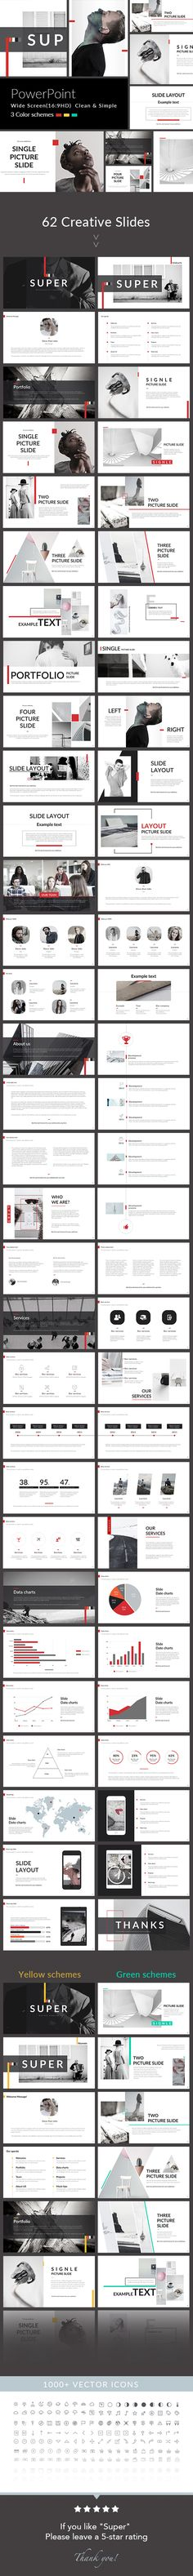 Super - PowerPoint Presentation Template